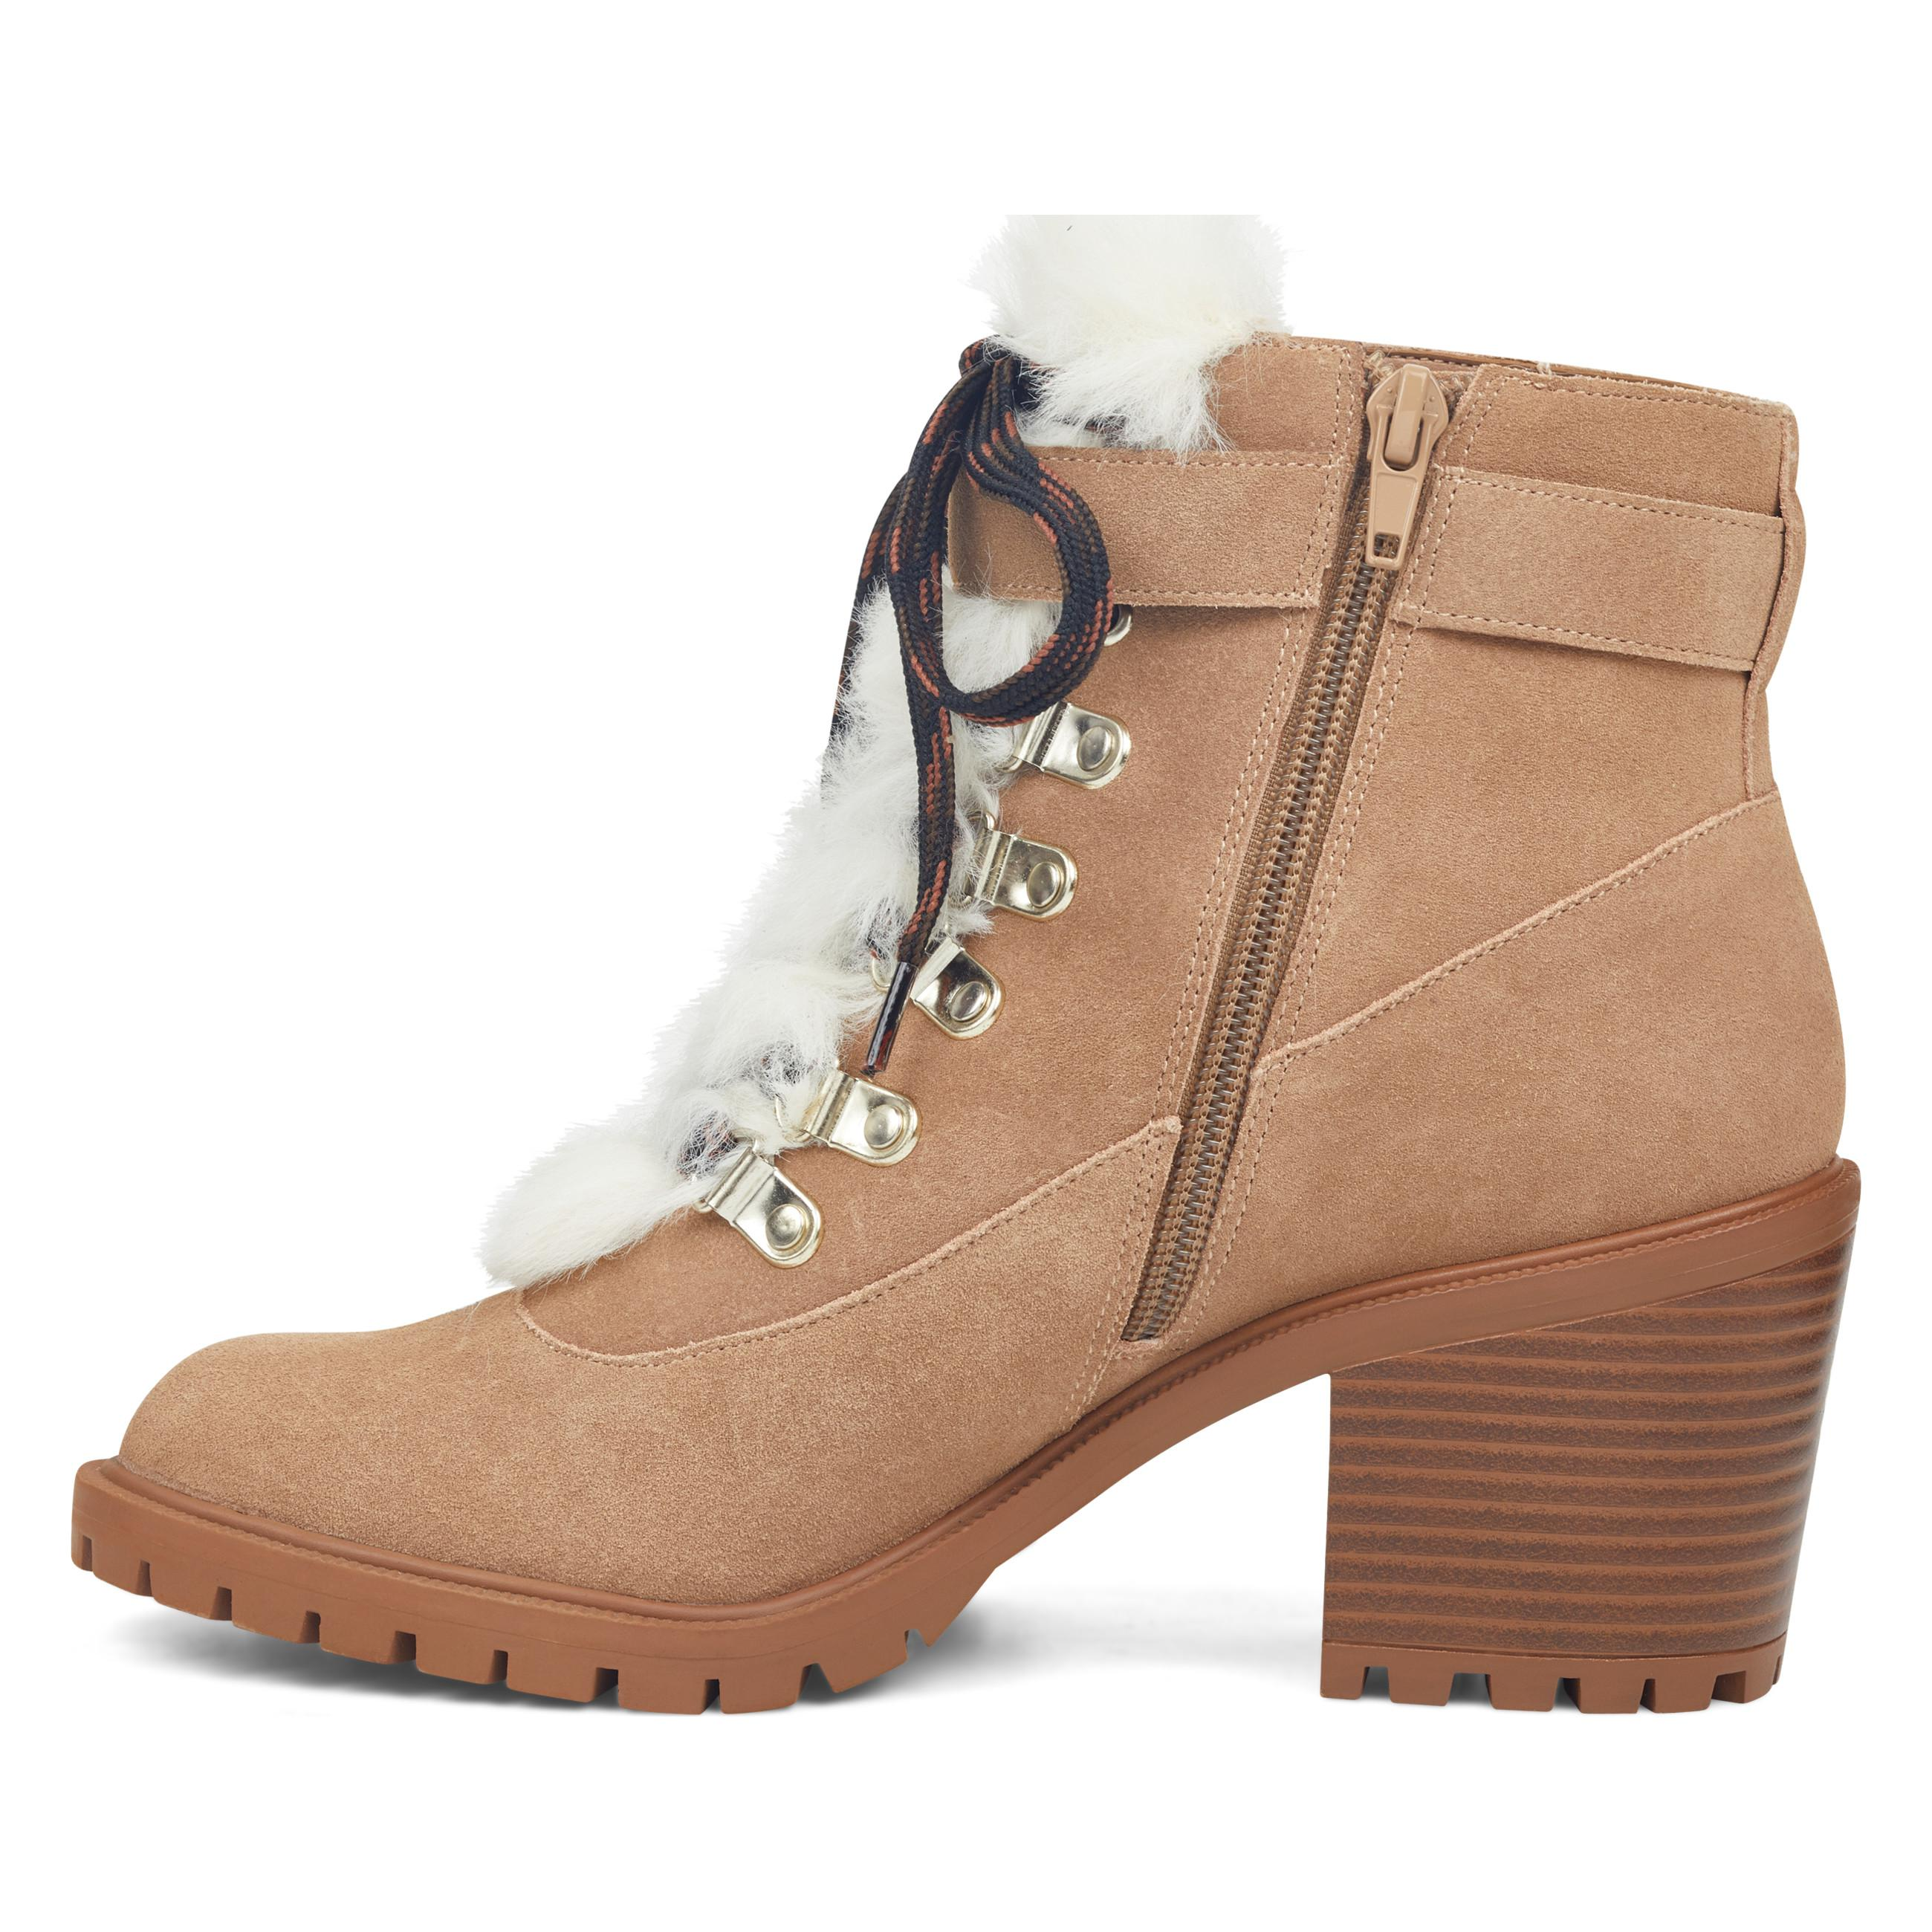 Nine West Iagree Lace Up Booties - Lyst